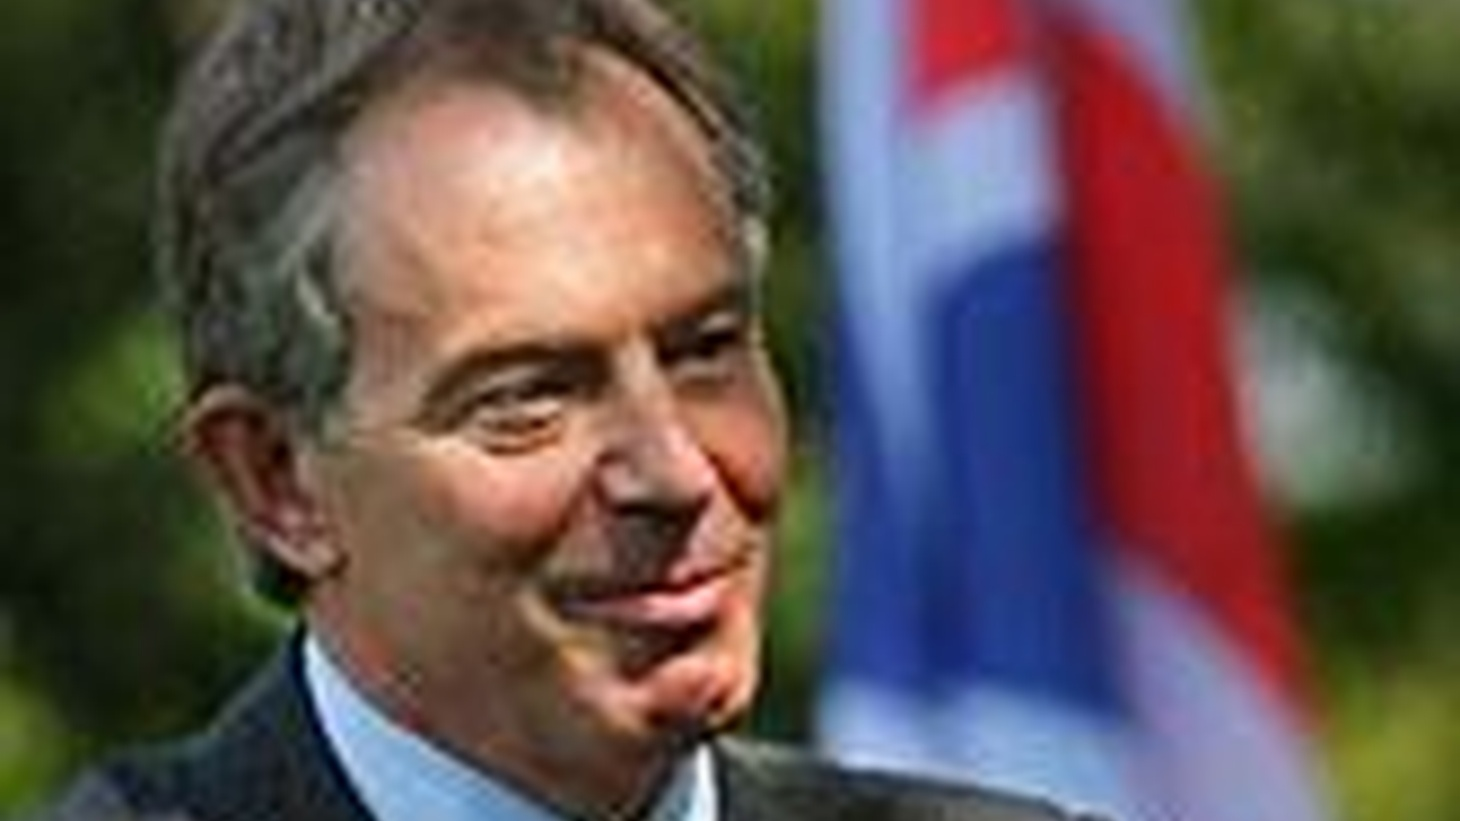 """Tony Blair says, """"Ten years is enough,"""" and he'll step down as British Prime Minister on June 27.   We look at Blair's record and what his departure will mean for President Bush and the European Union.   Also, President Bush on a new Iraq spending bill, and Pope Benedict XVI on politics, religion and abortion."""